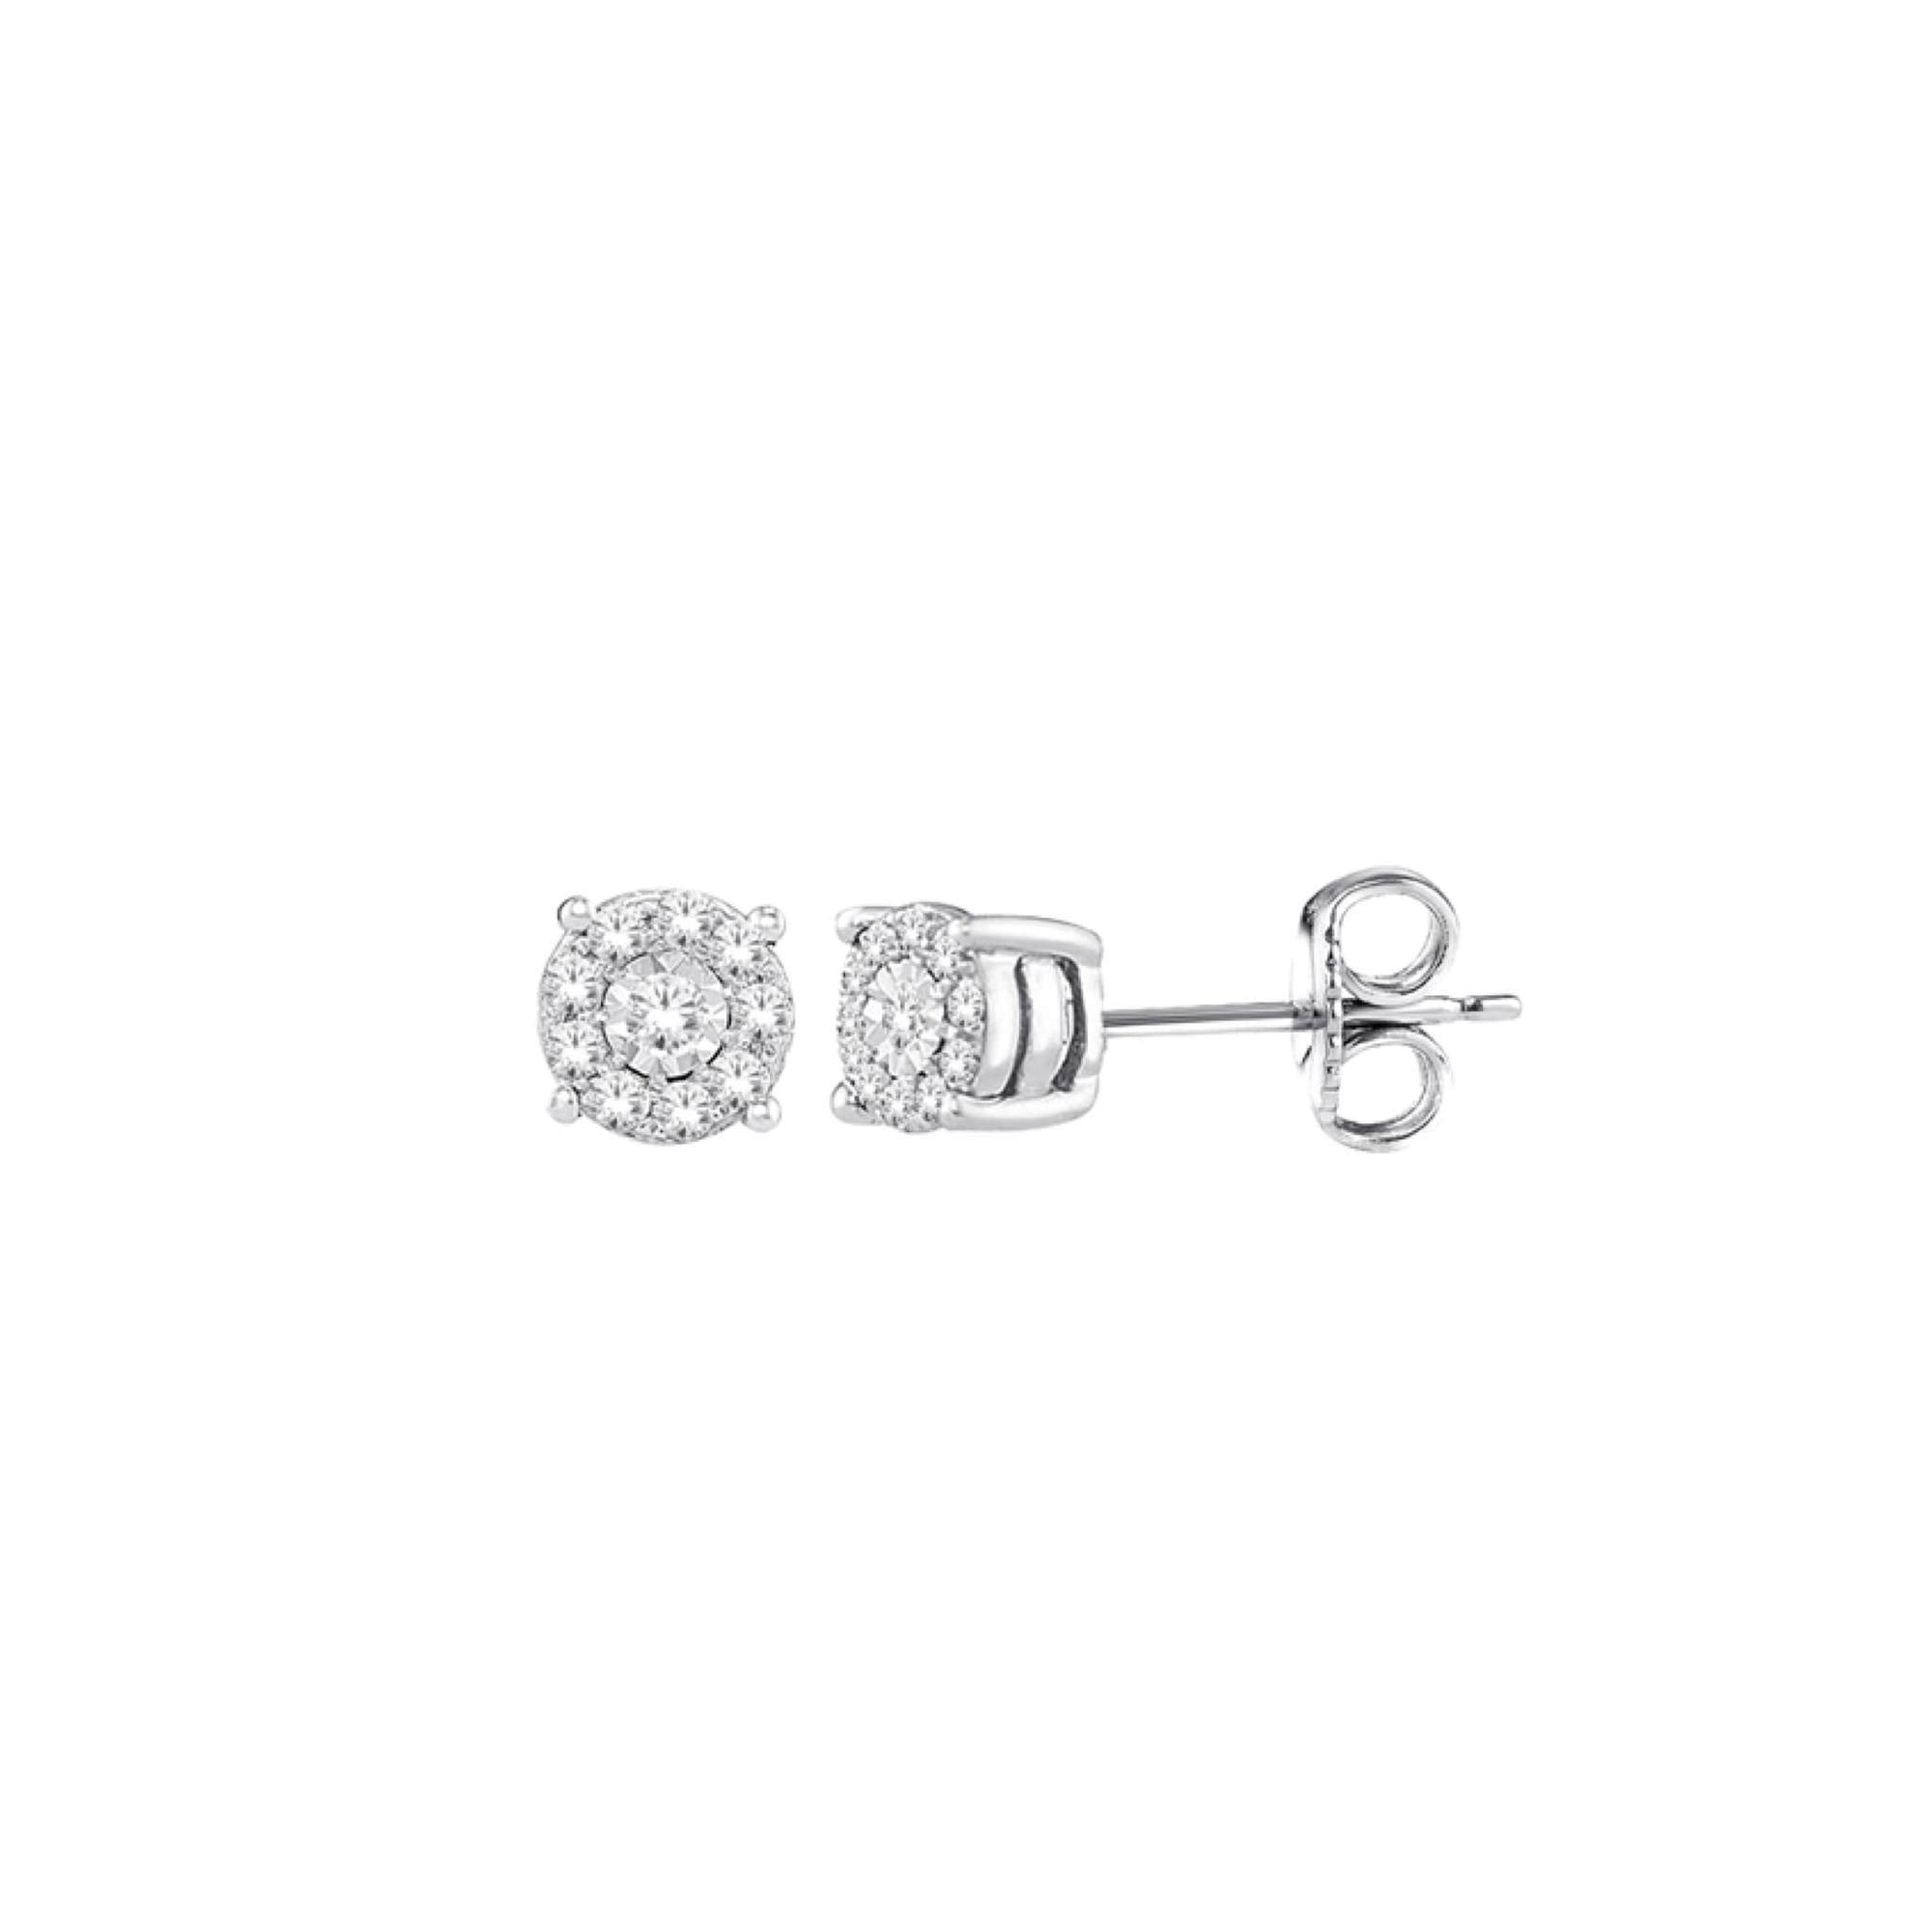 10K Star Bright Diamond Stud Earrings (0.05 CT. TW.) at Arman's Jewellers